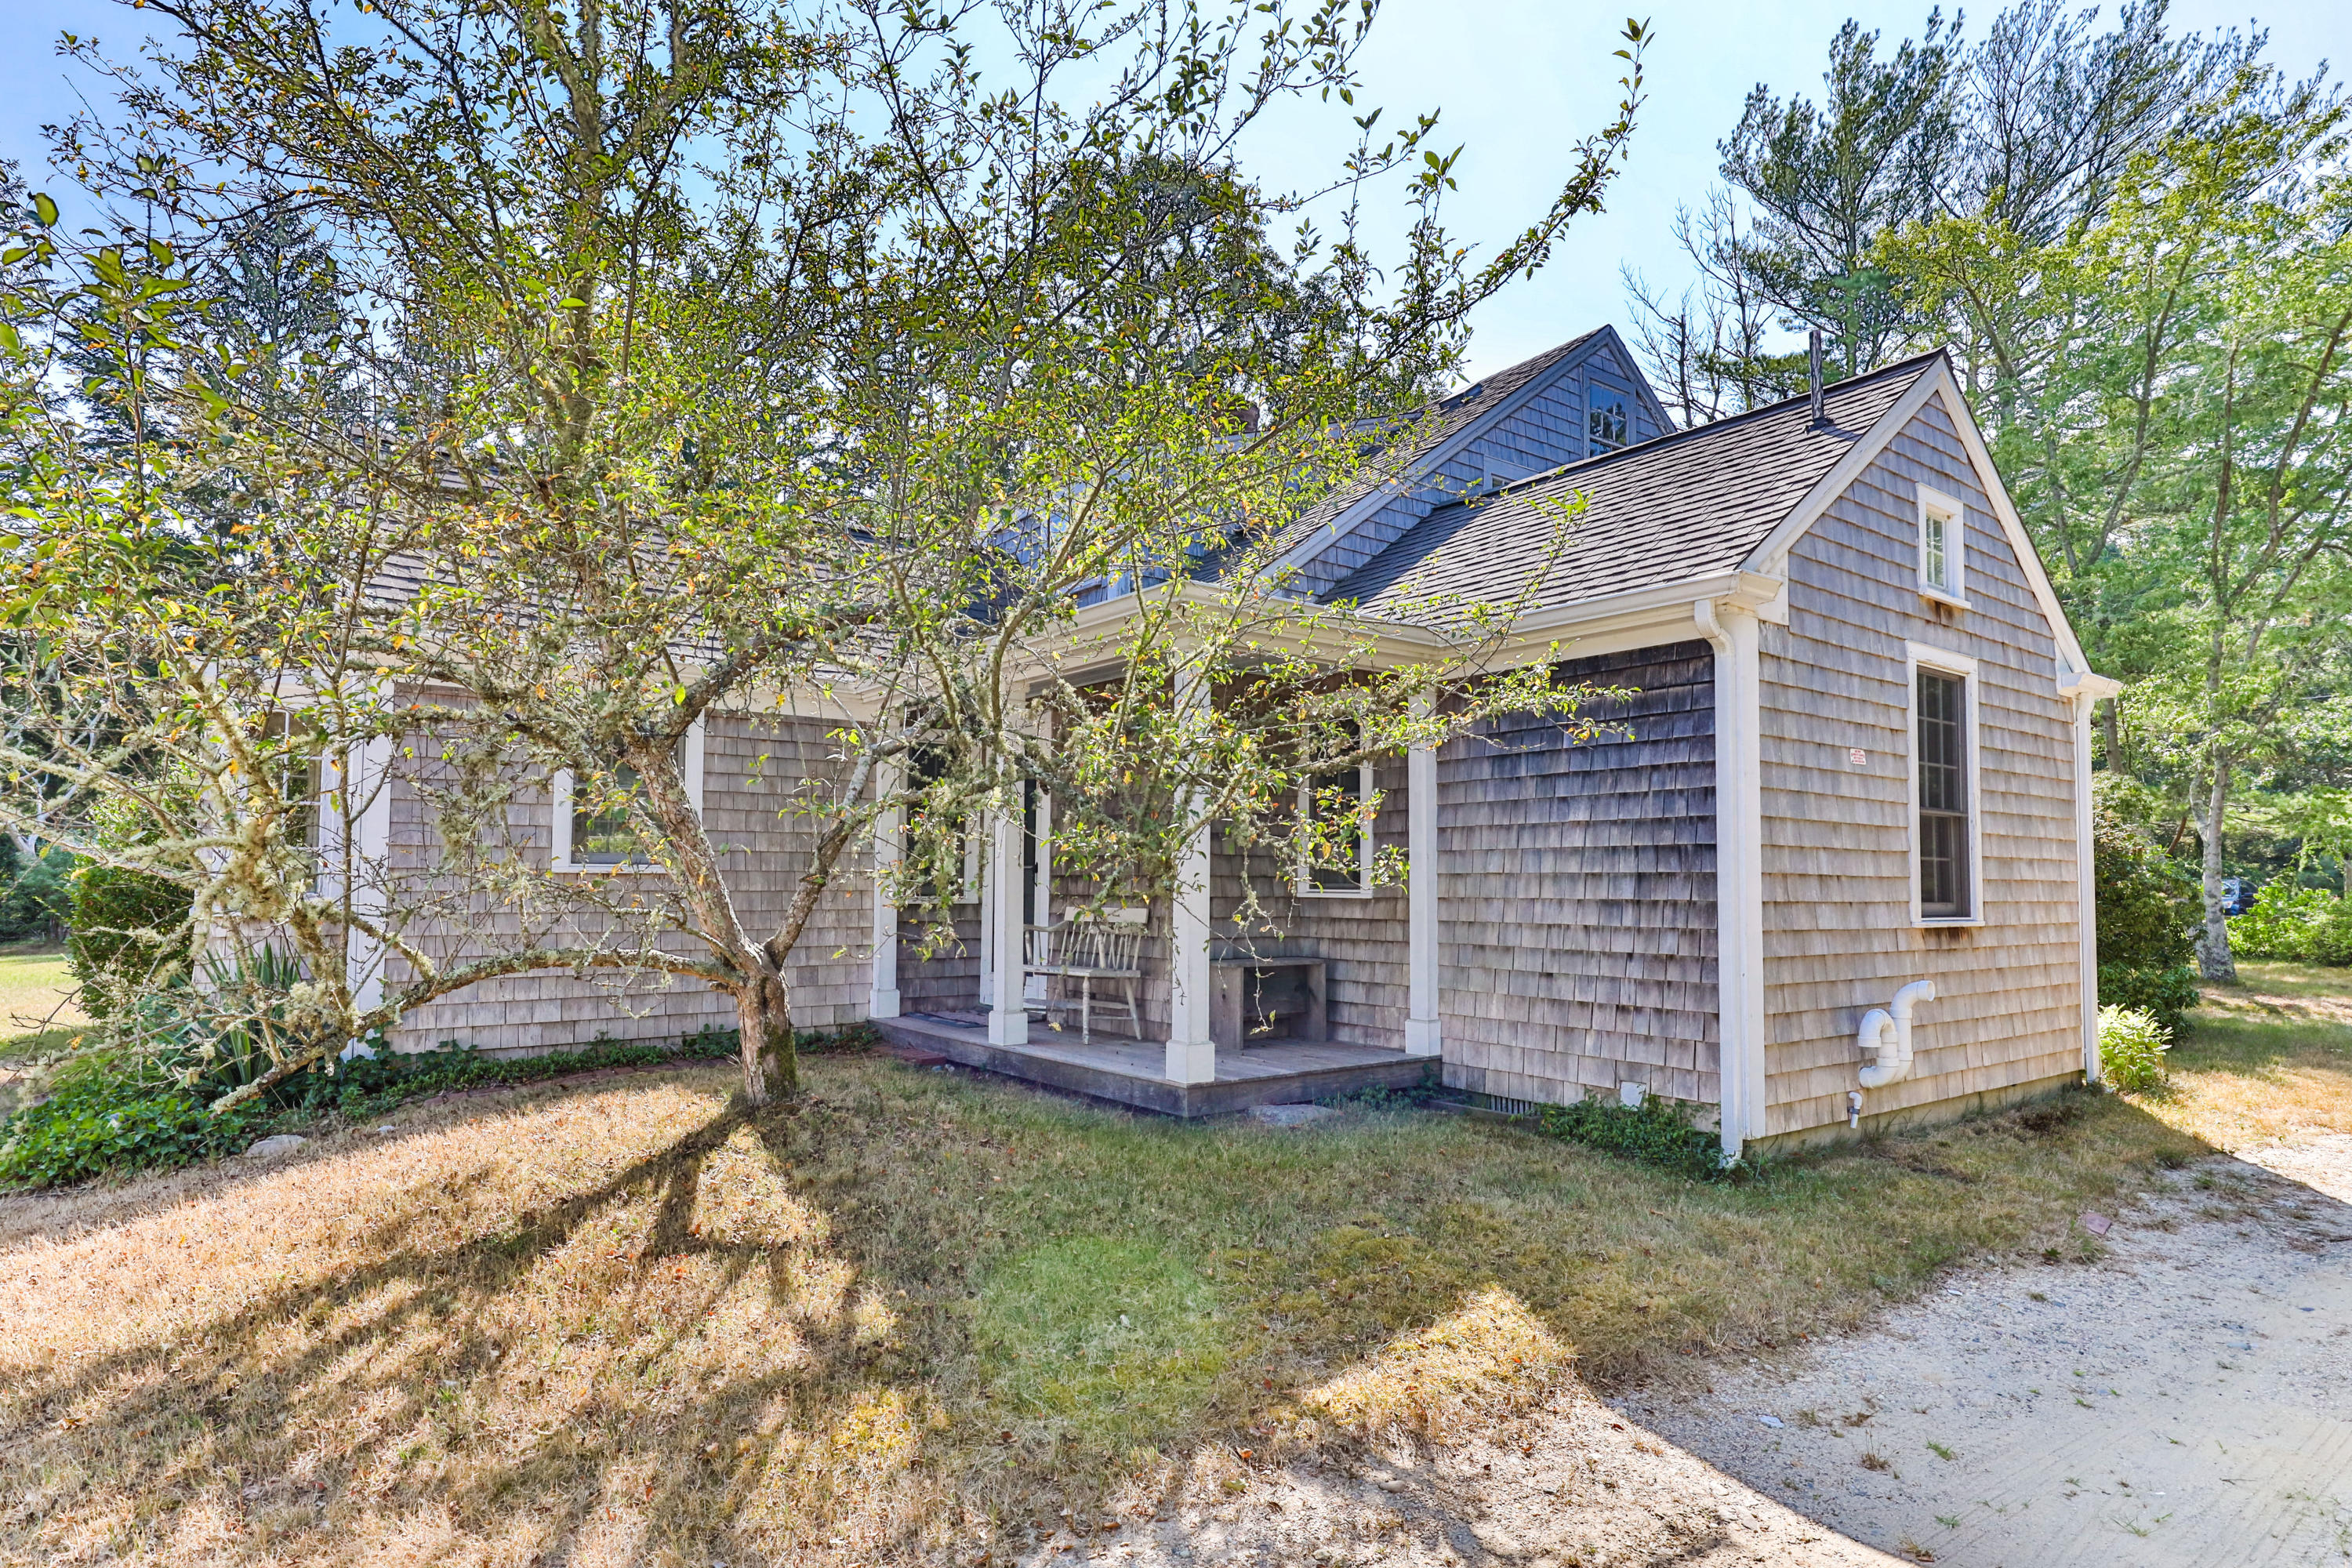 73 Harwich Road, Orleans MA, 02653 sales details